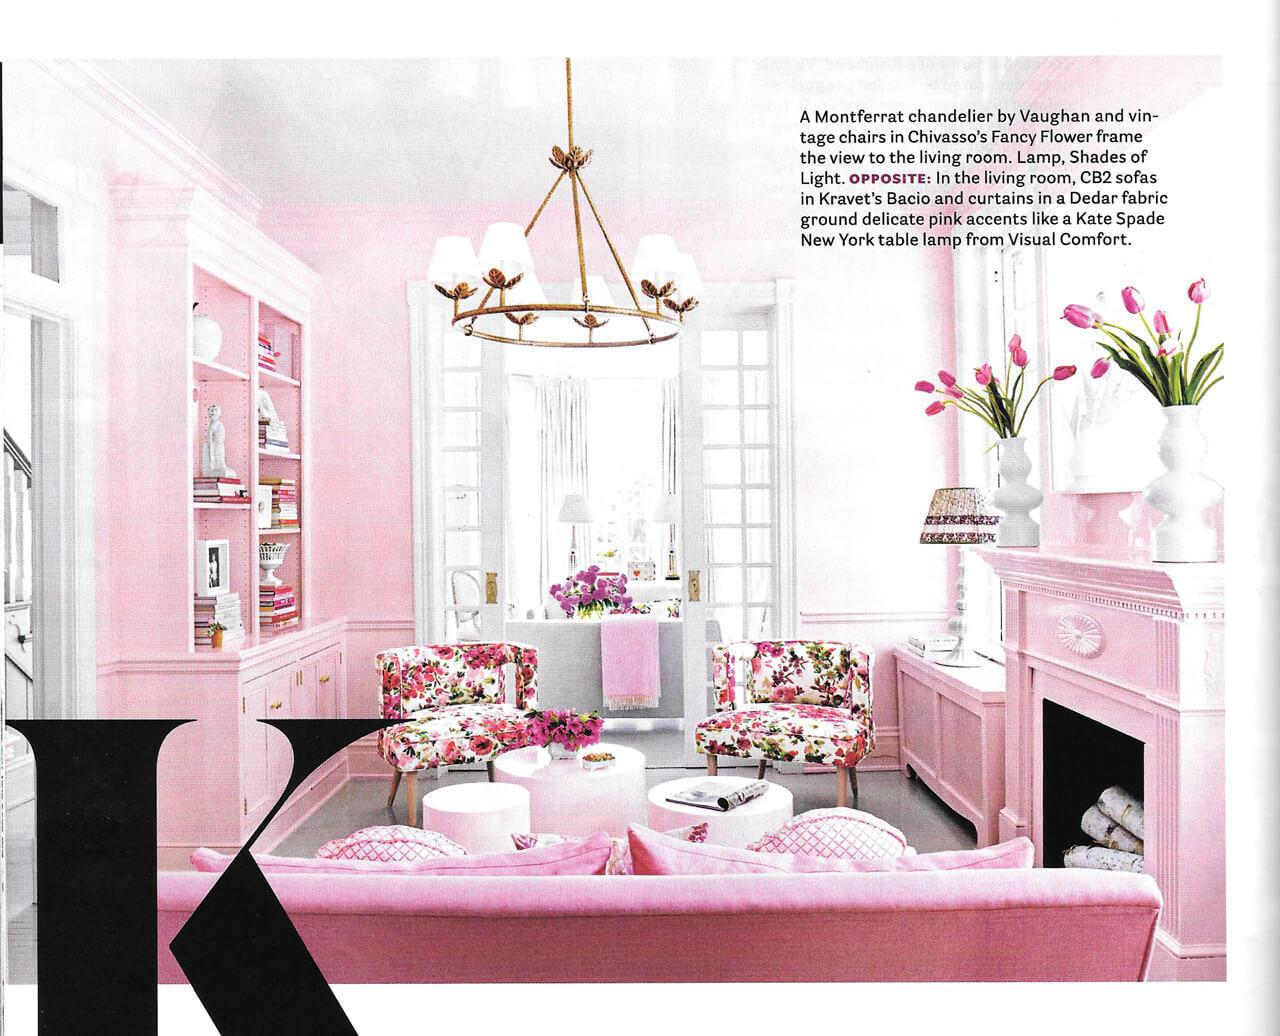 Pink perfection suellen gregory for house beautiful for Beautiful house and room